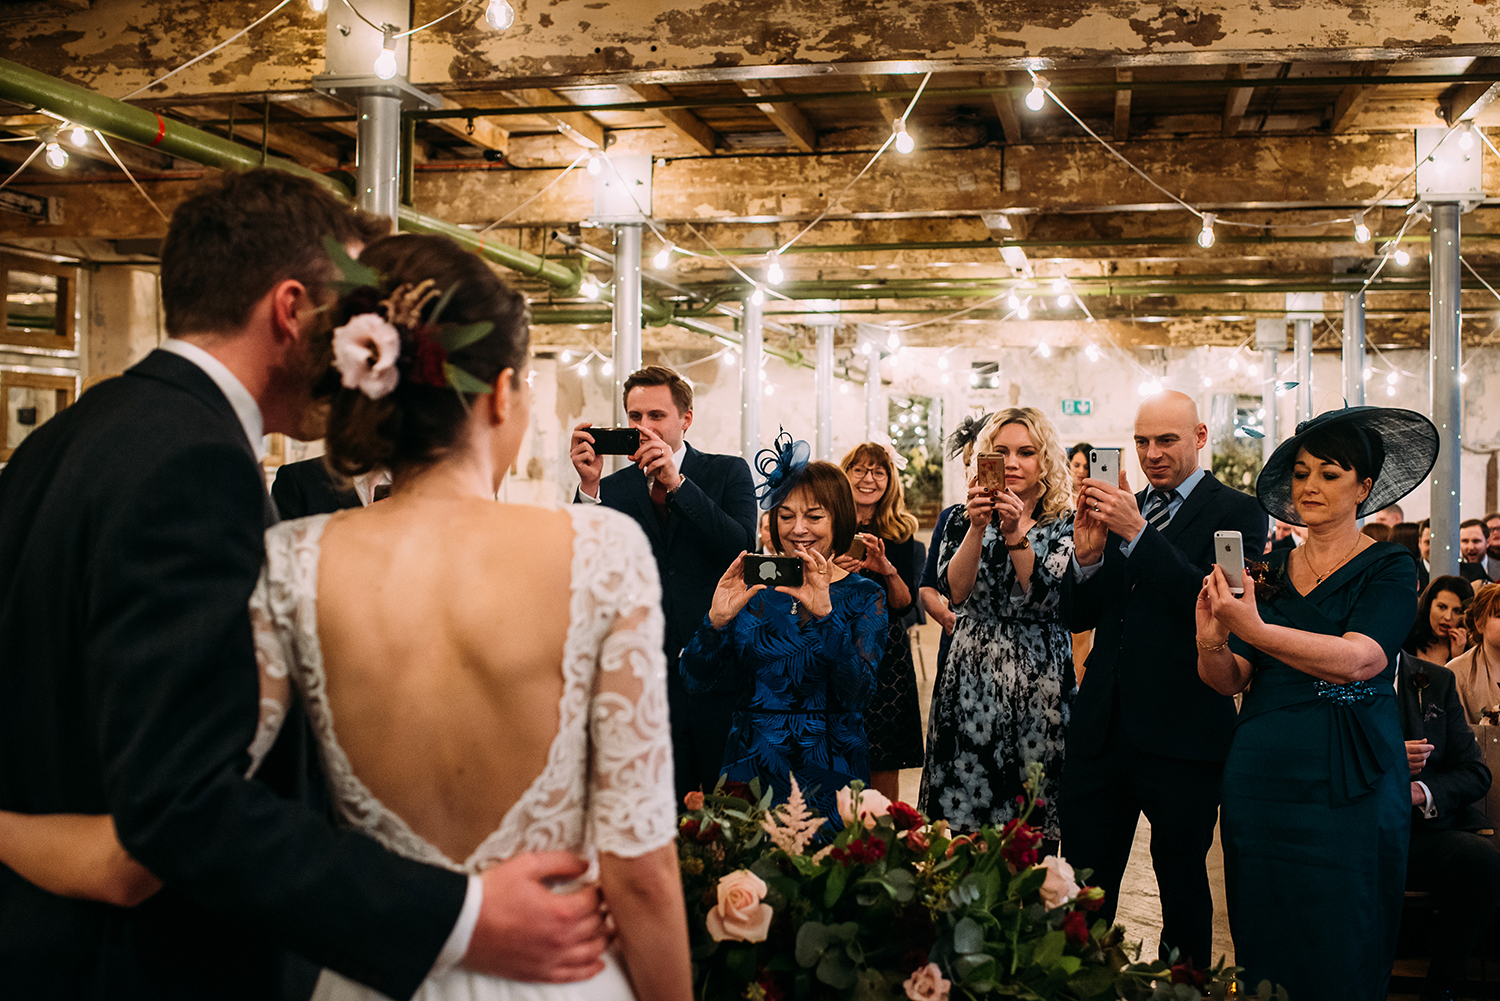 guests photographing the couple